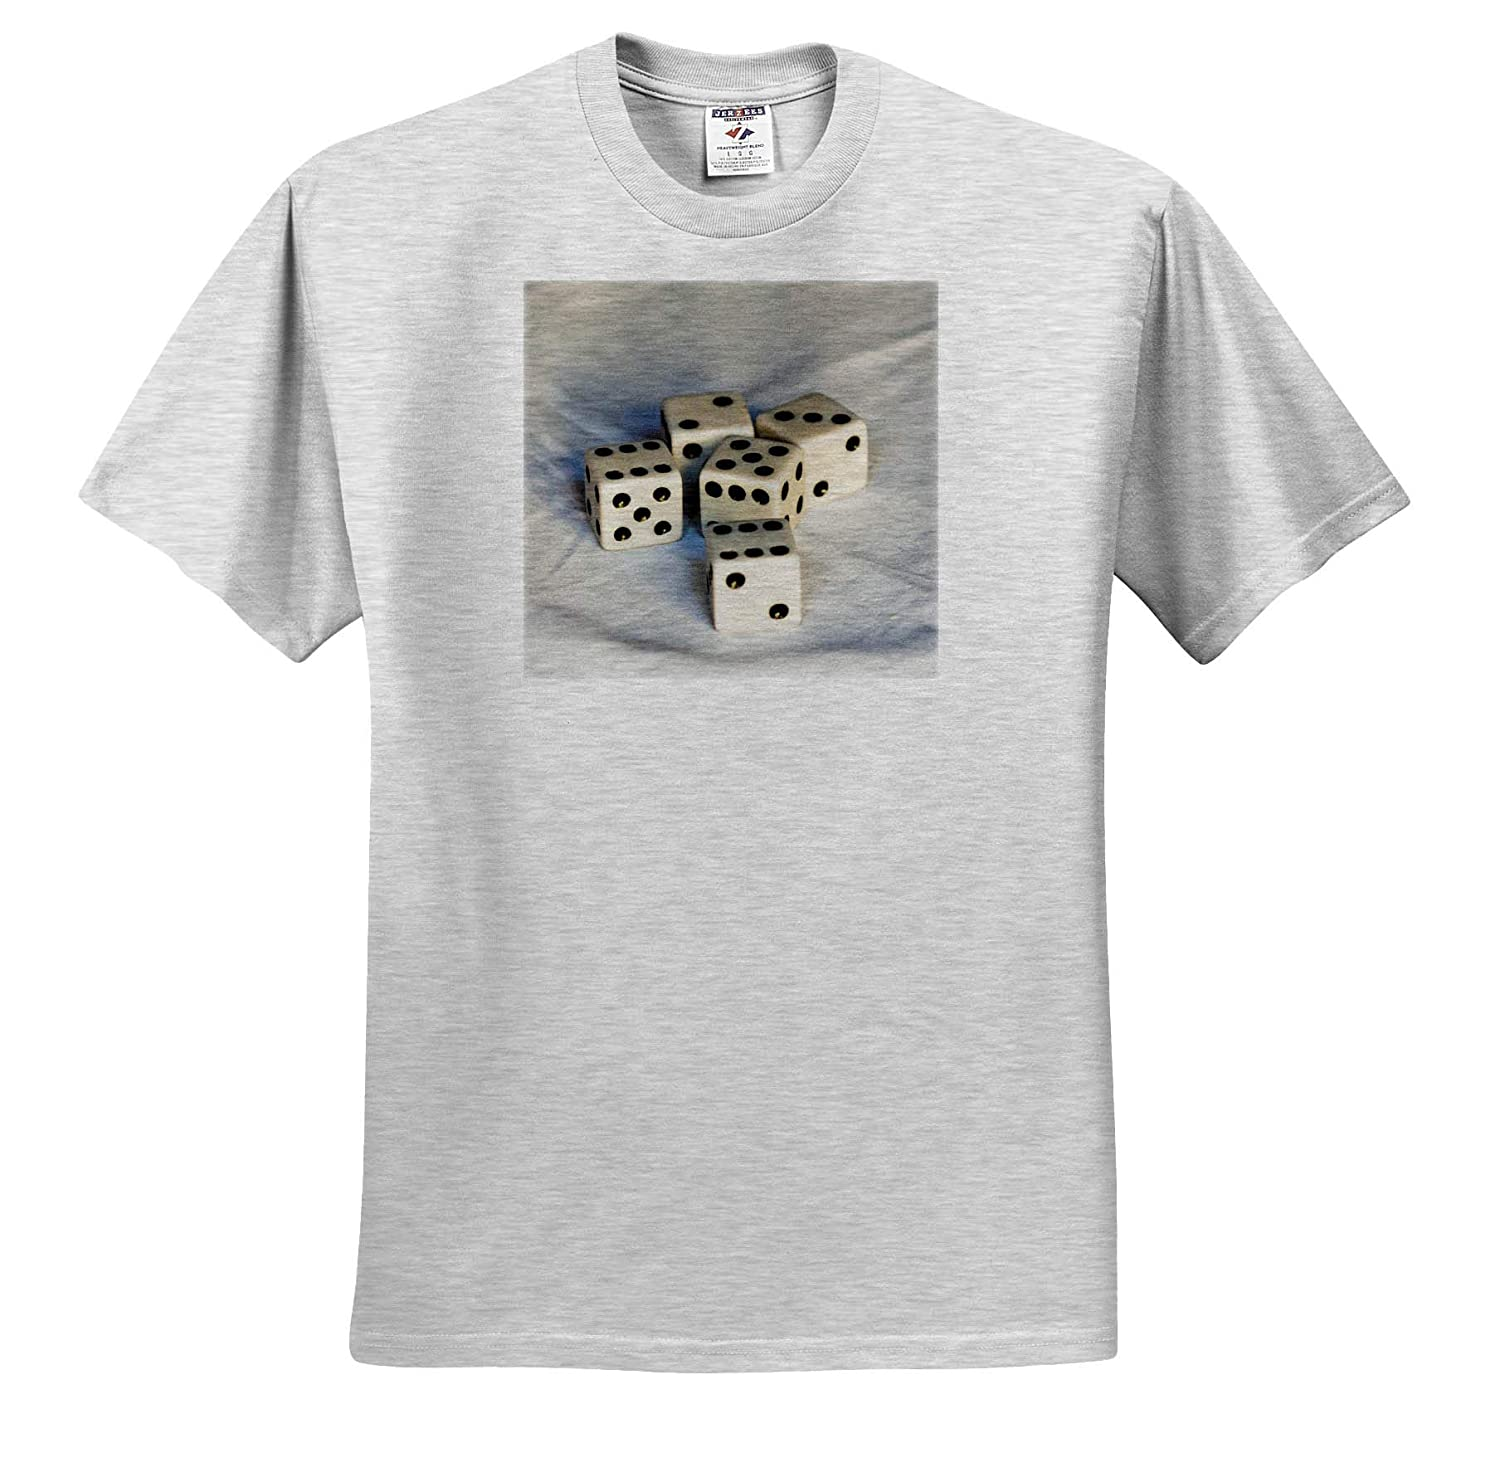 T-Shirts Objects Misc 3dRose Alexis Photography - Image of Five White Dices on a White Cloth